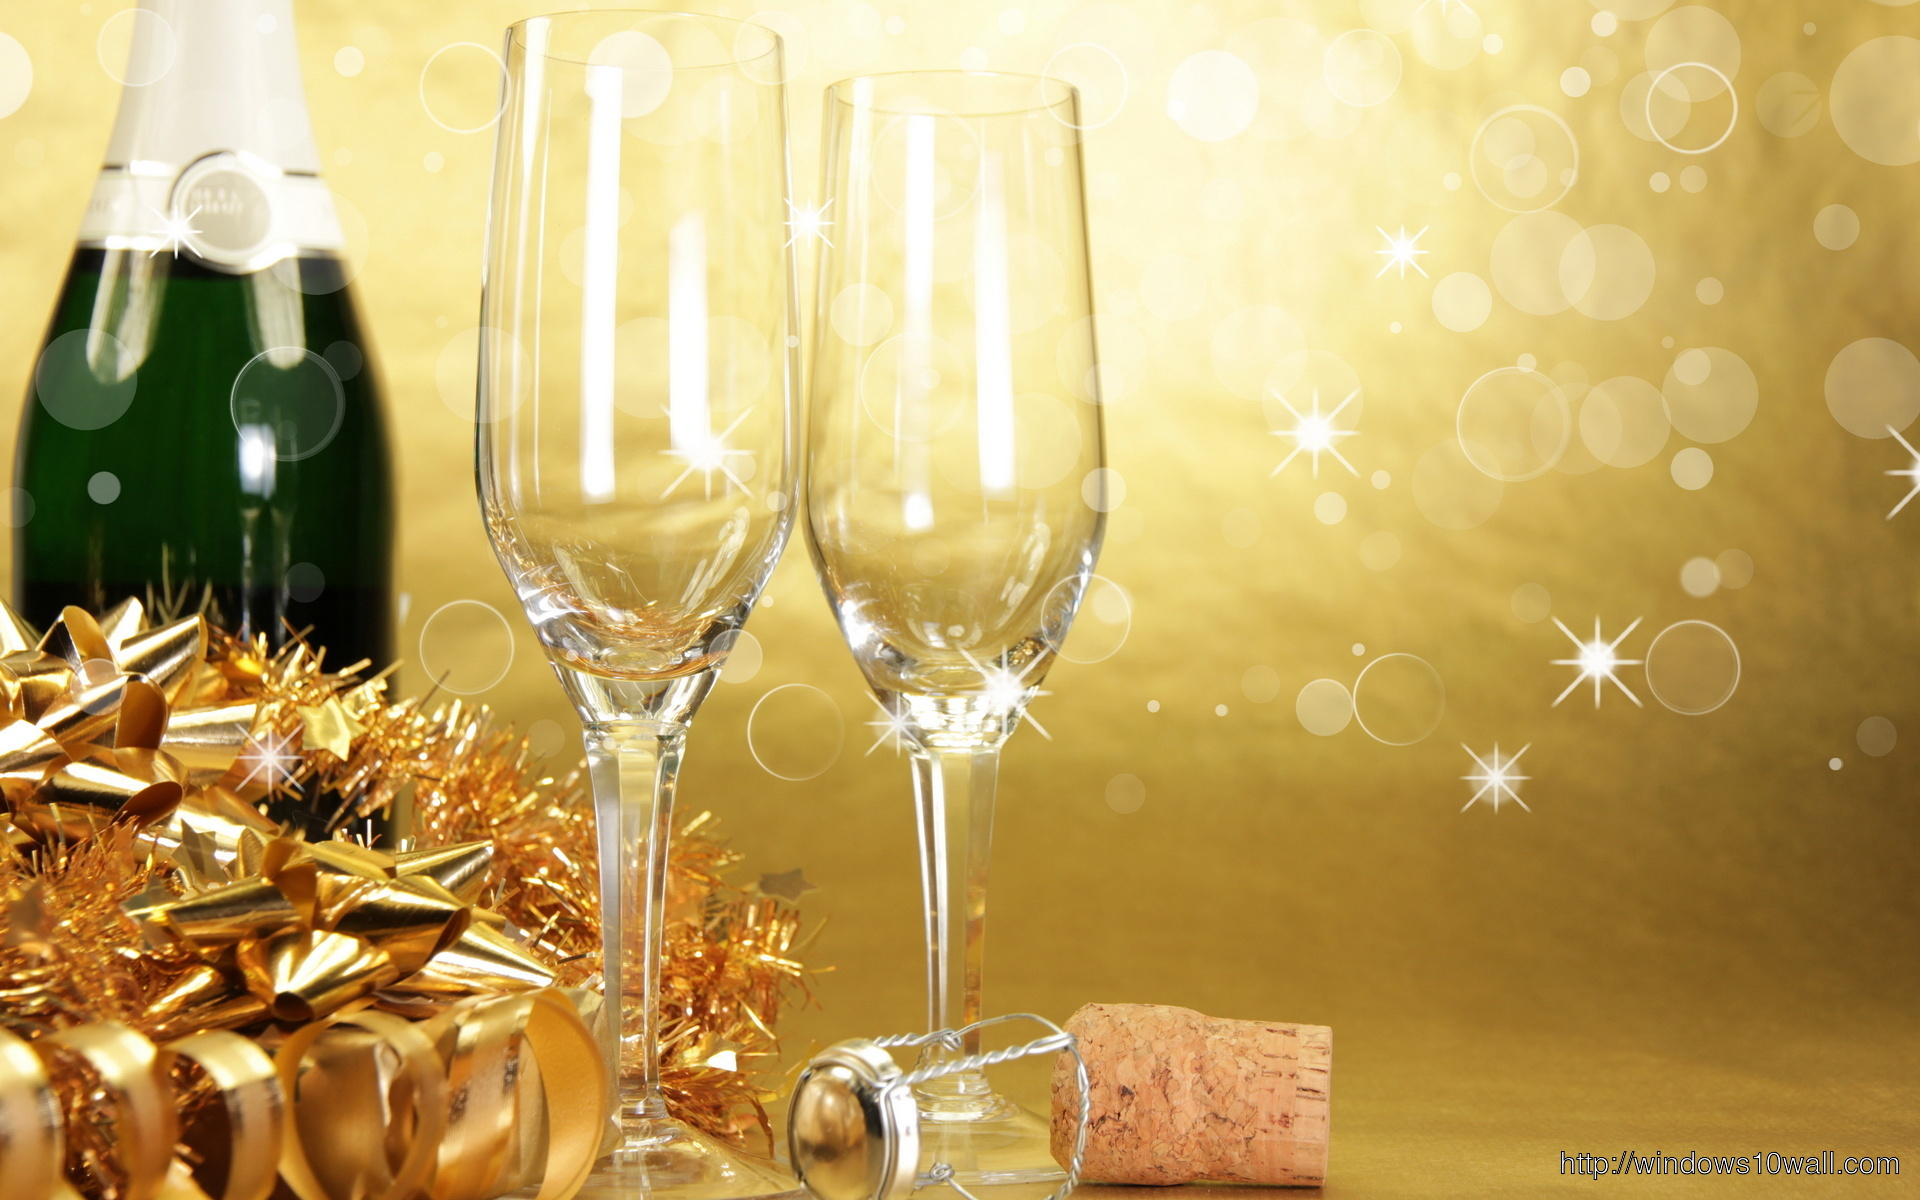 Champagne Glasses on Golden Background Wallpaper